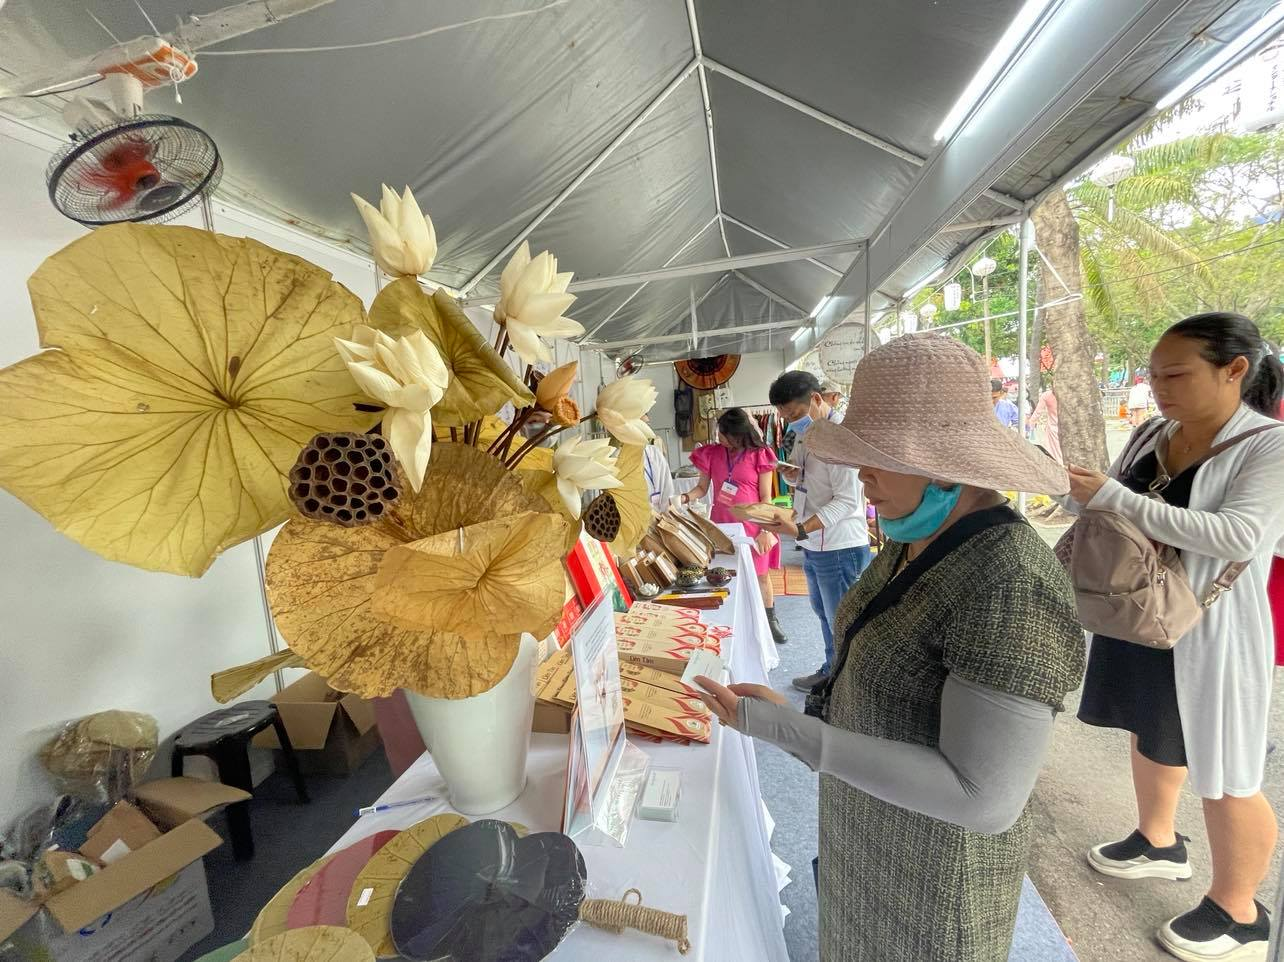 Festival goers visit a booth selling products made from lotus at the Japan Vietnam Festival in Ho Chi Minh City on April 17, 2021. Photo: Dong Nguyen / Tuoi Tre News